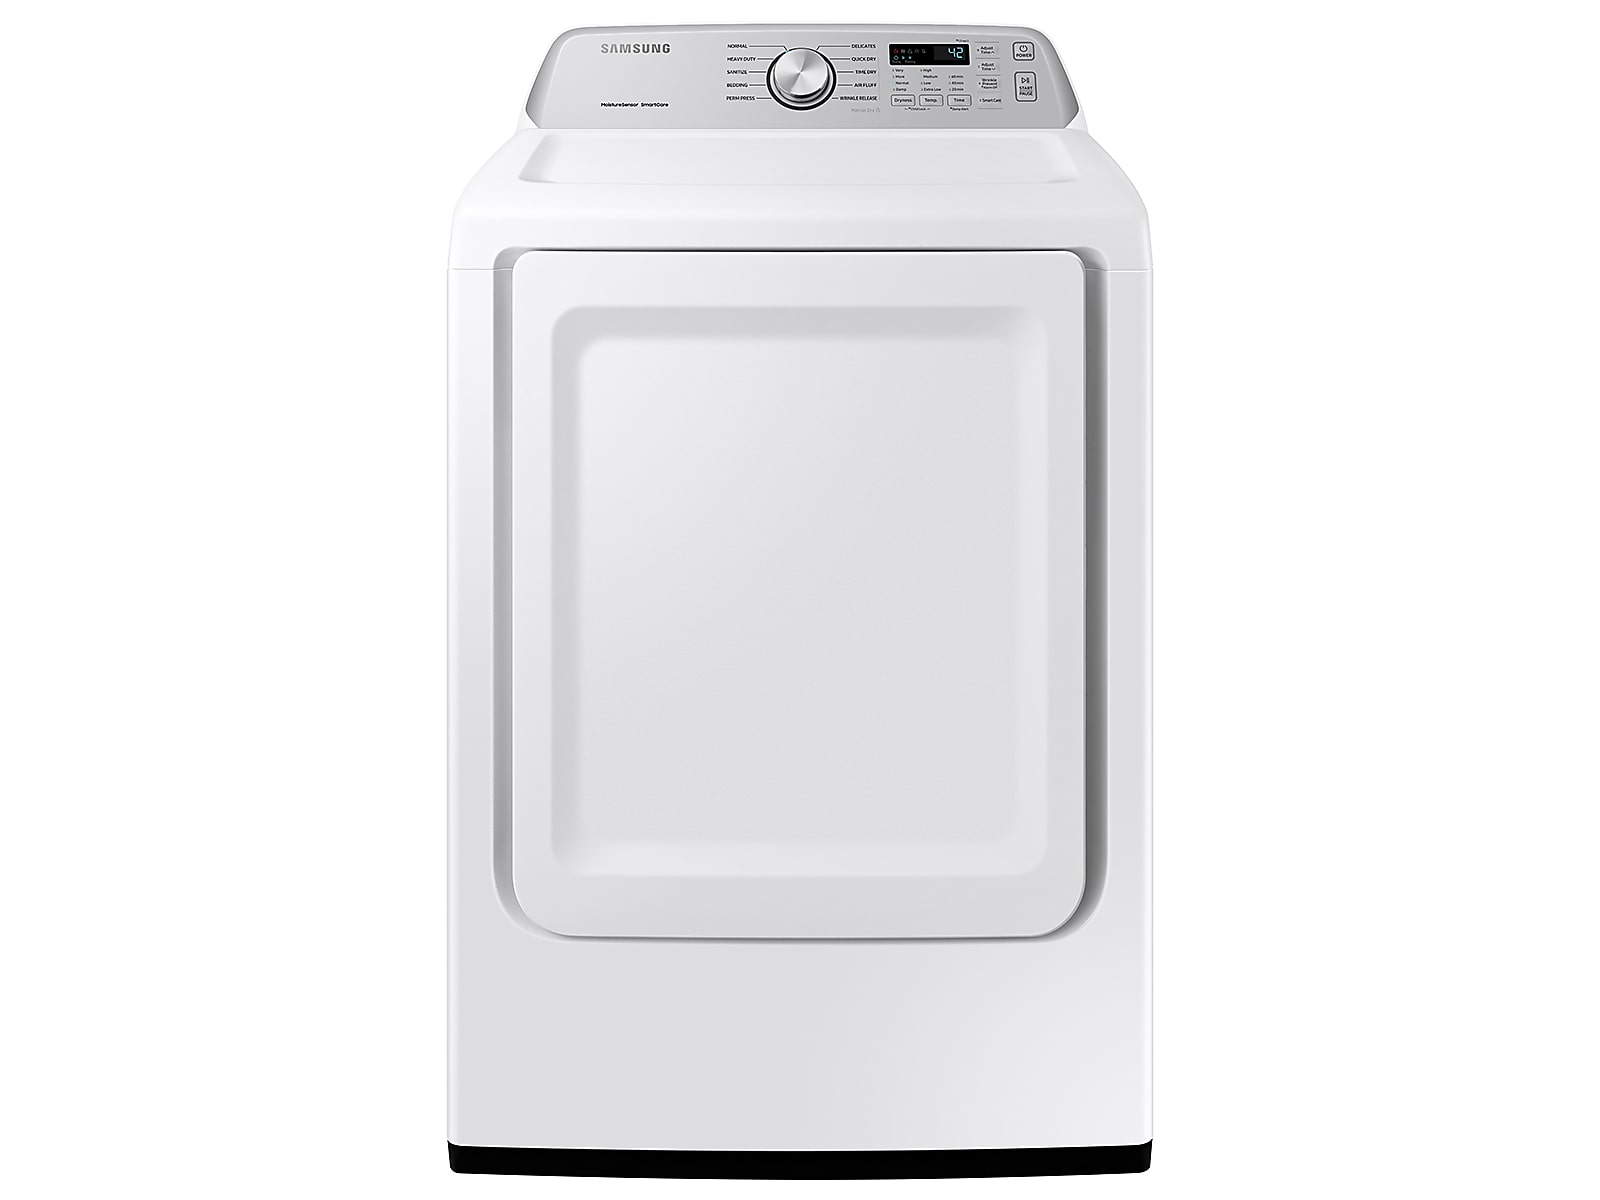 Samsung coupon: Samsung 7.4 cu. ft. Electric Dryer with Sensor Dry in White(DVE45T3400W/A3)